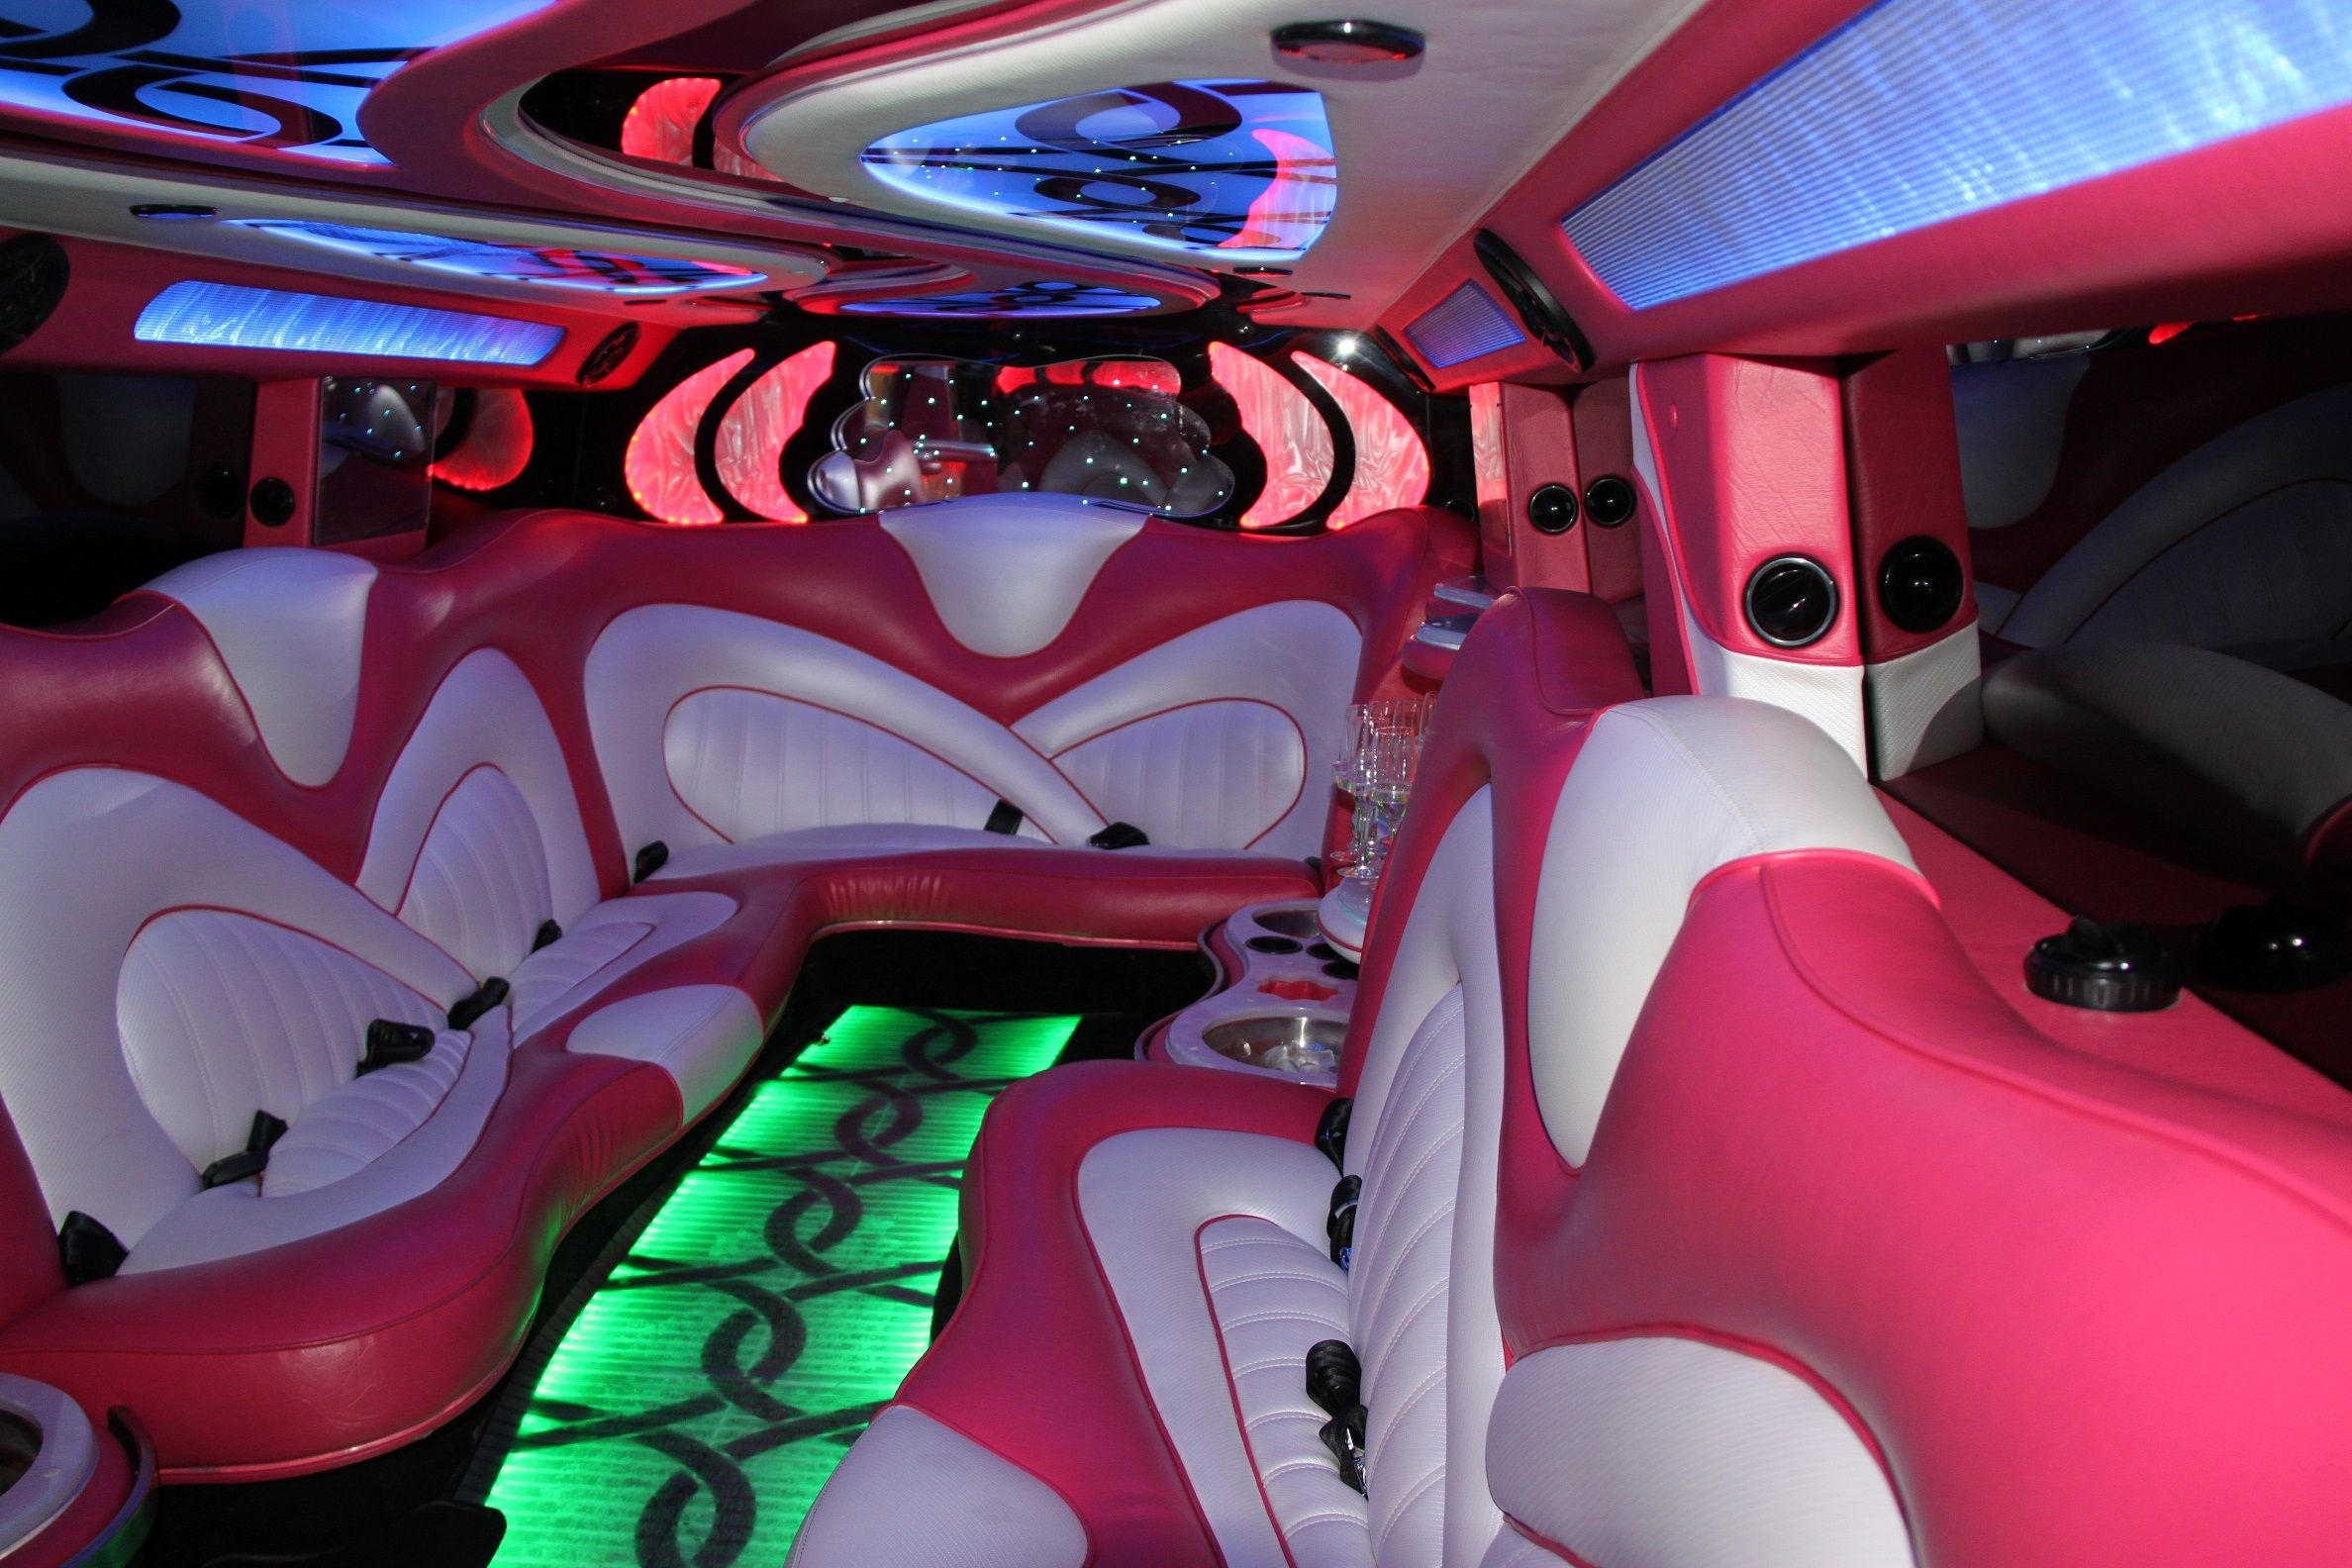 Showtime Limousines pink hummer perth interior